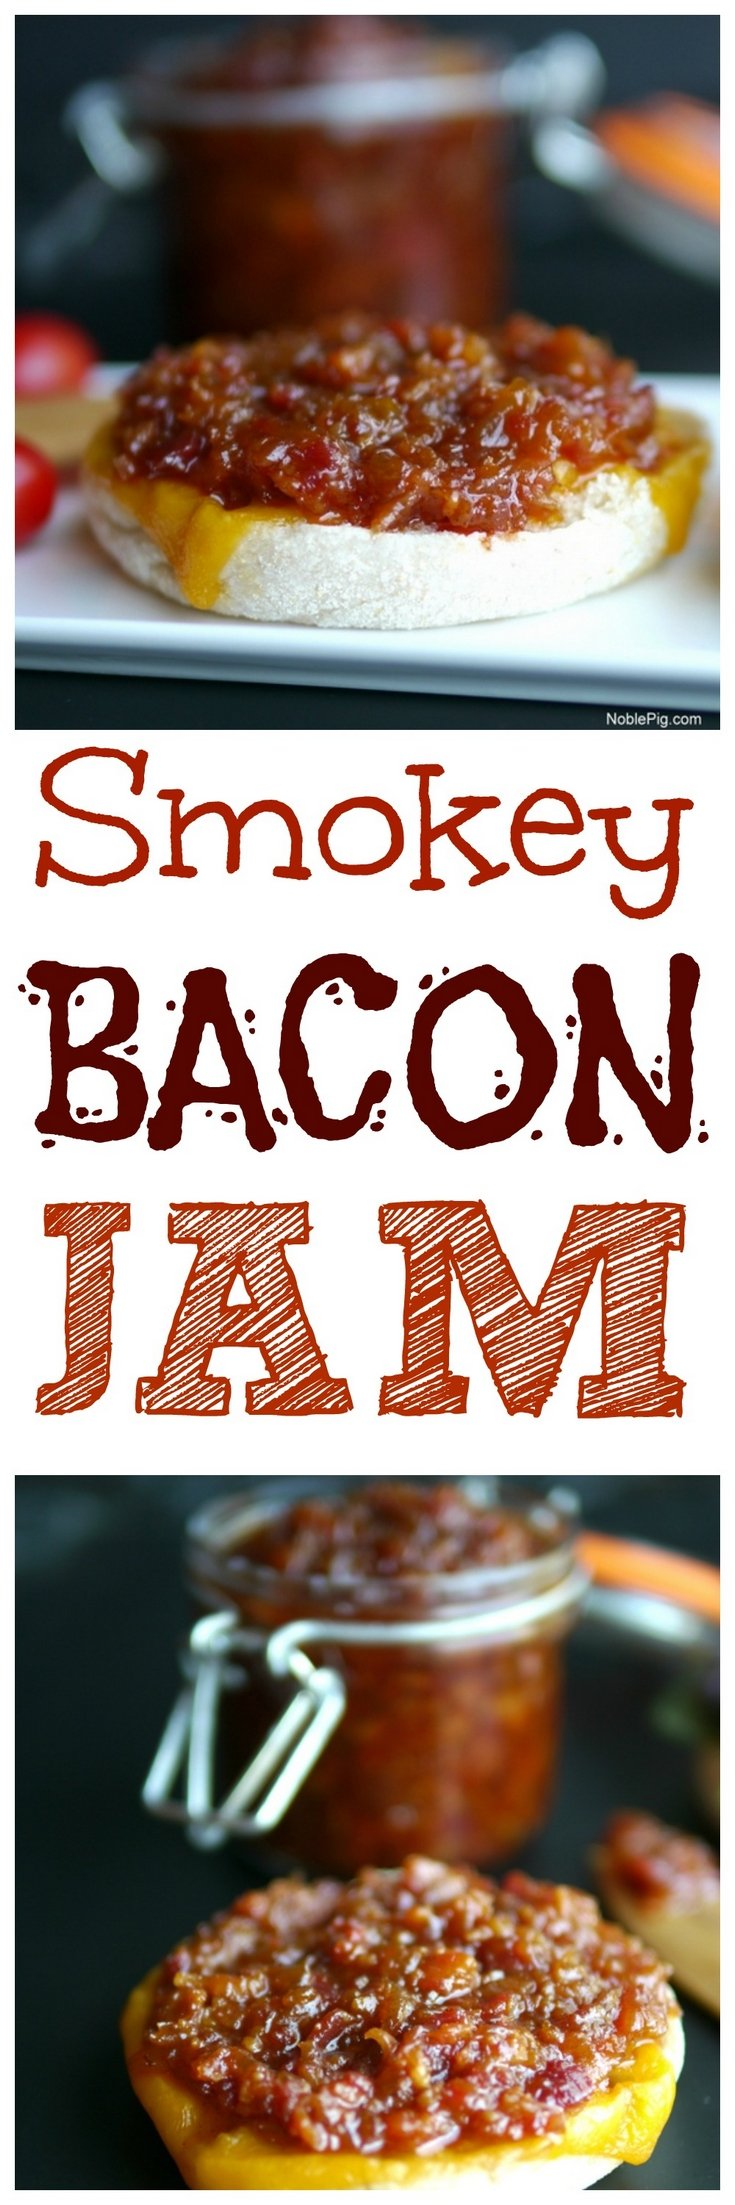 VIDEO + RECIPE: Look no further for the perfect spread for your toast, burger or anything else you can think up. This Smokey Bacon Jam is going to take your sandwiches to the next level of delicious from NoblePig.com. via @cmpollak1